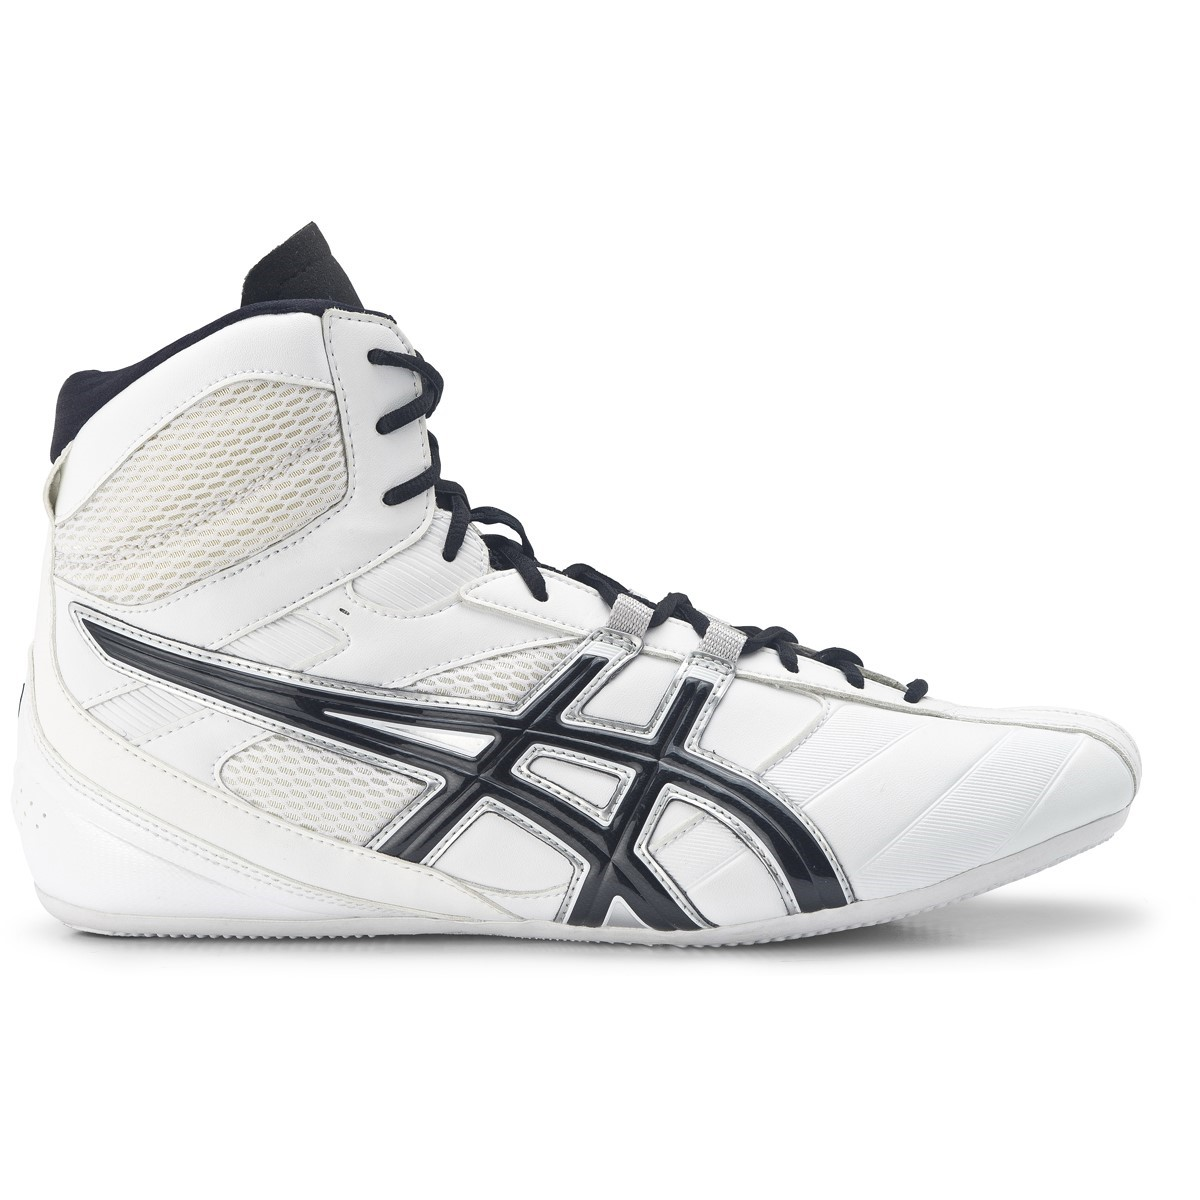 Mens White Tiger Shoes